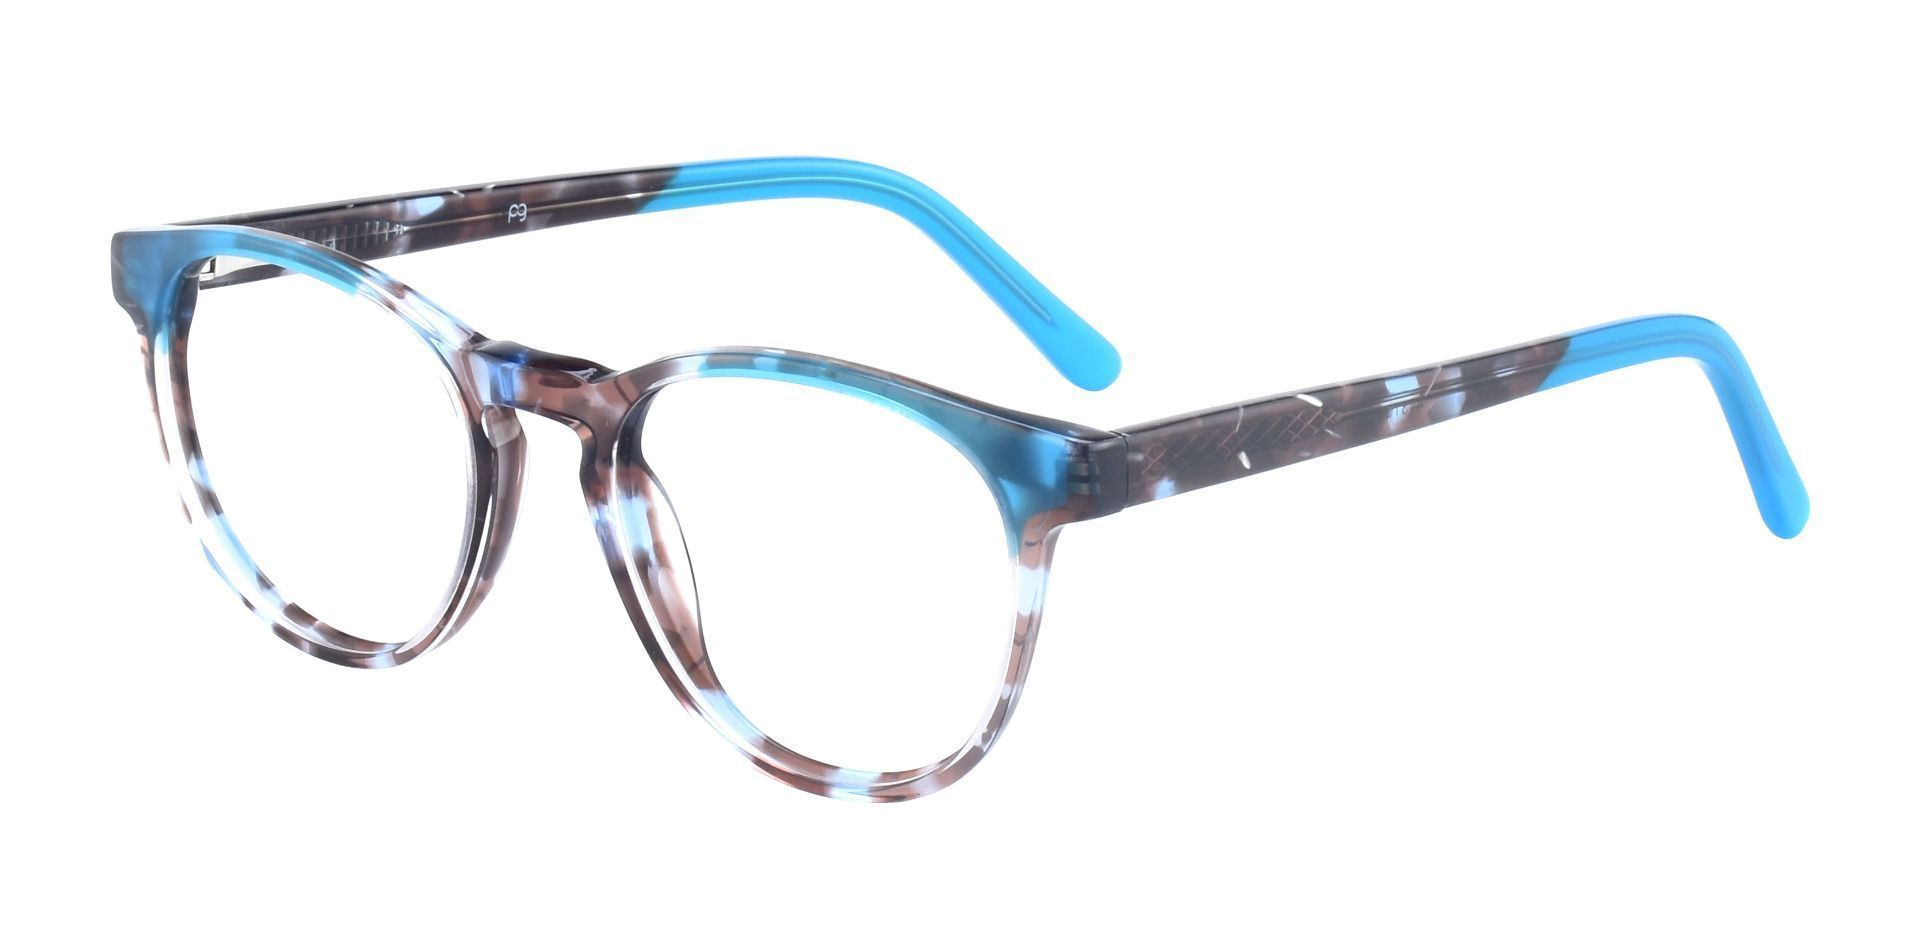 Pepper Oval Prescription Glasses - Blue